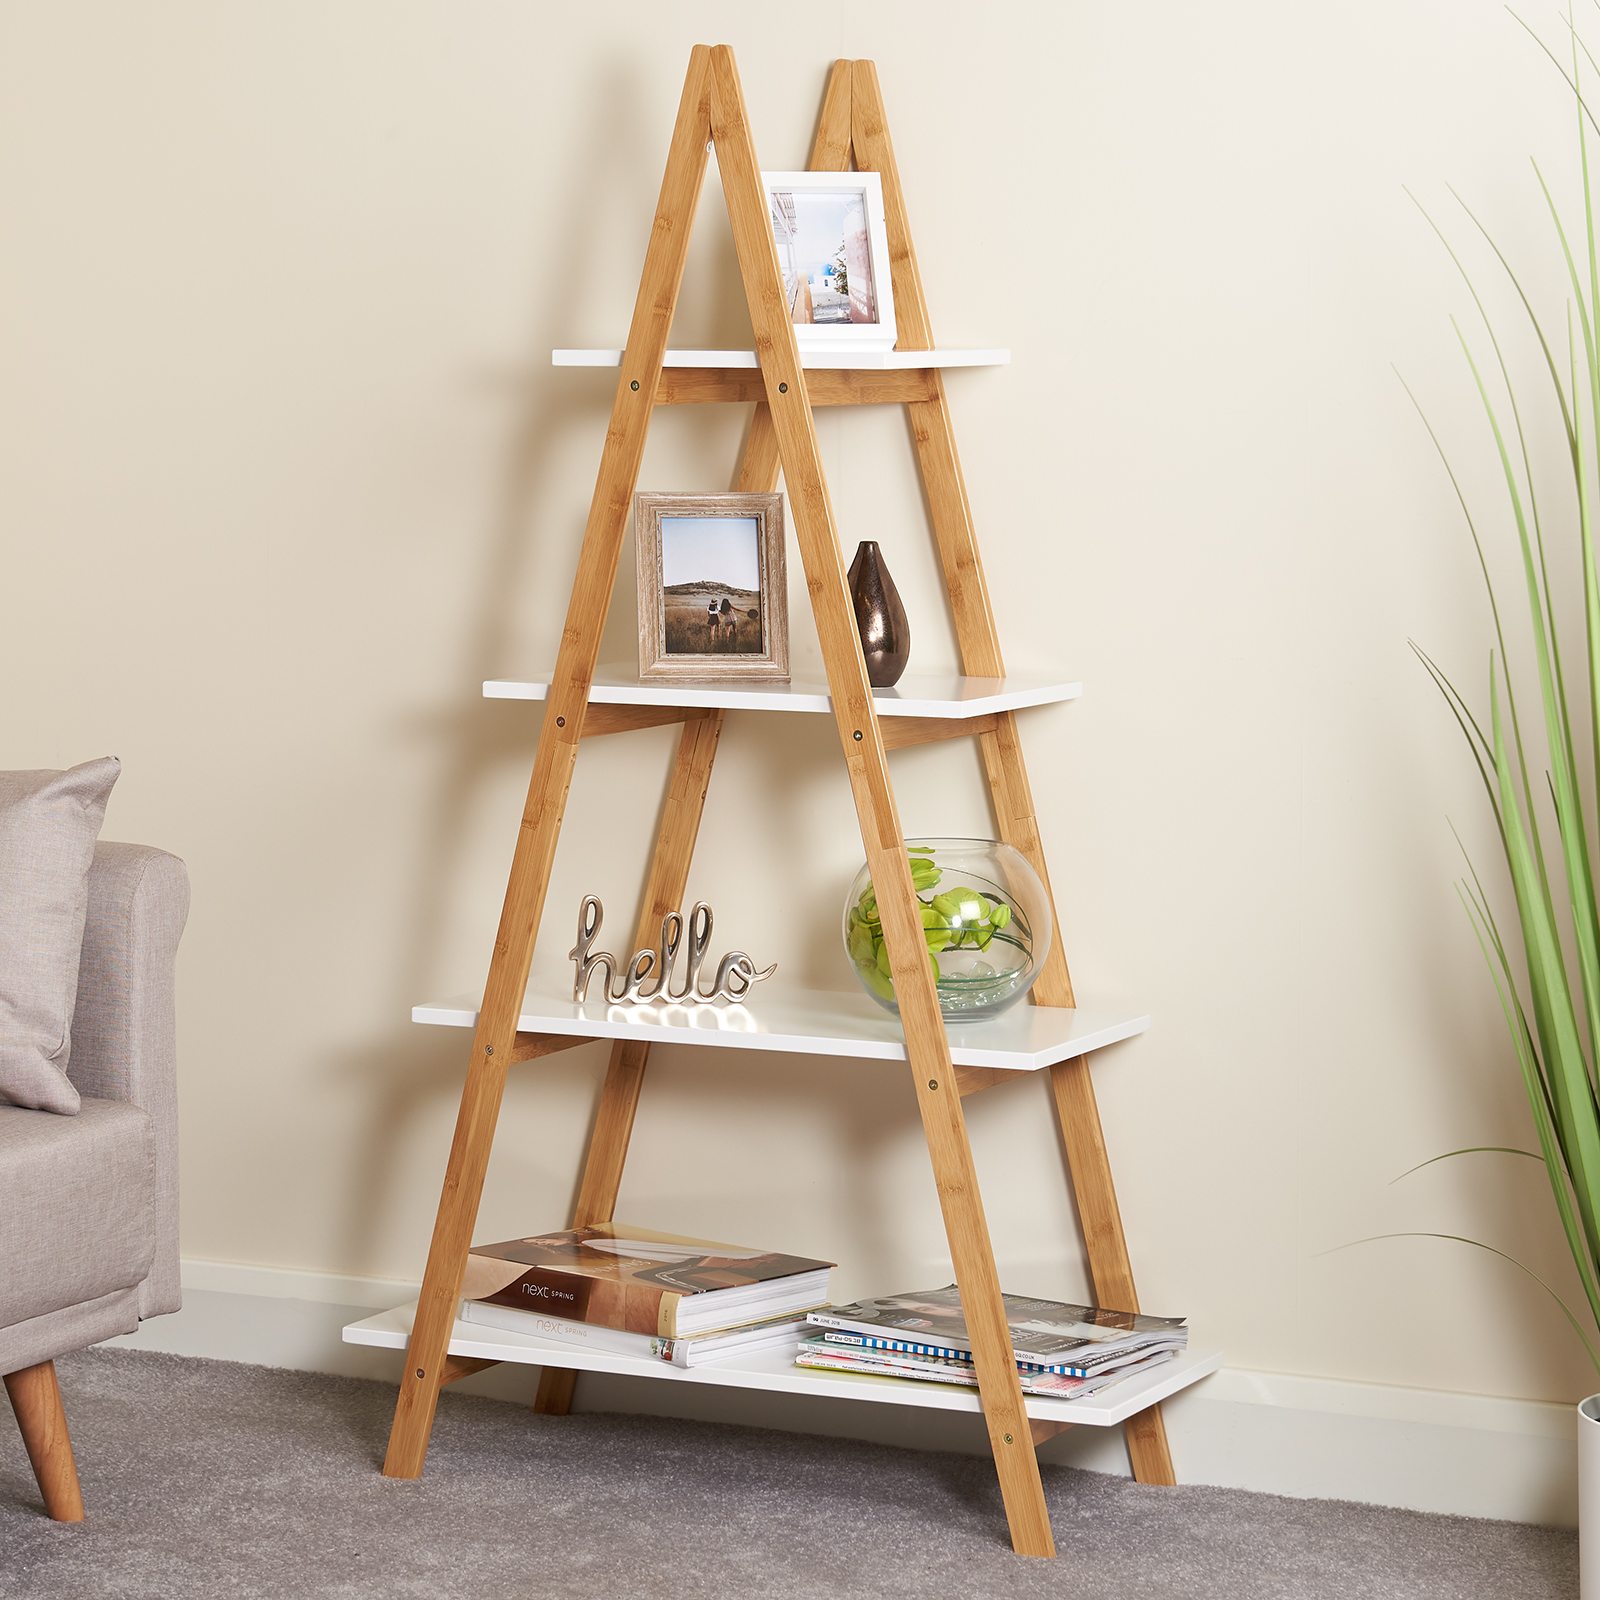 Details About Hartleys 4 Tier White Wooden Ladder Shelf Bookcase Display Unit Bamboo Shelves